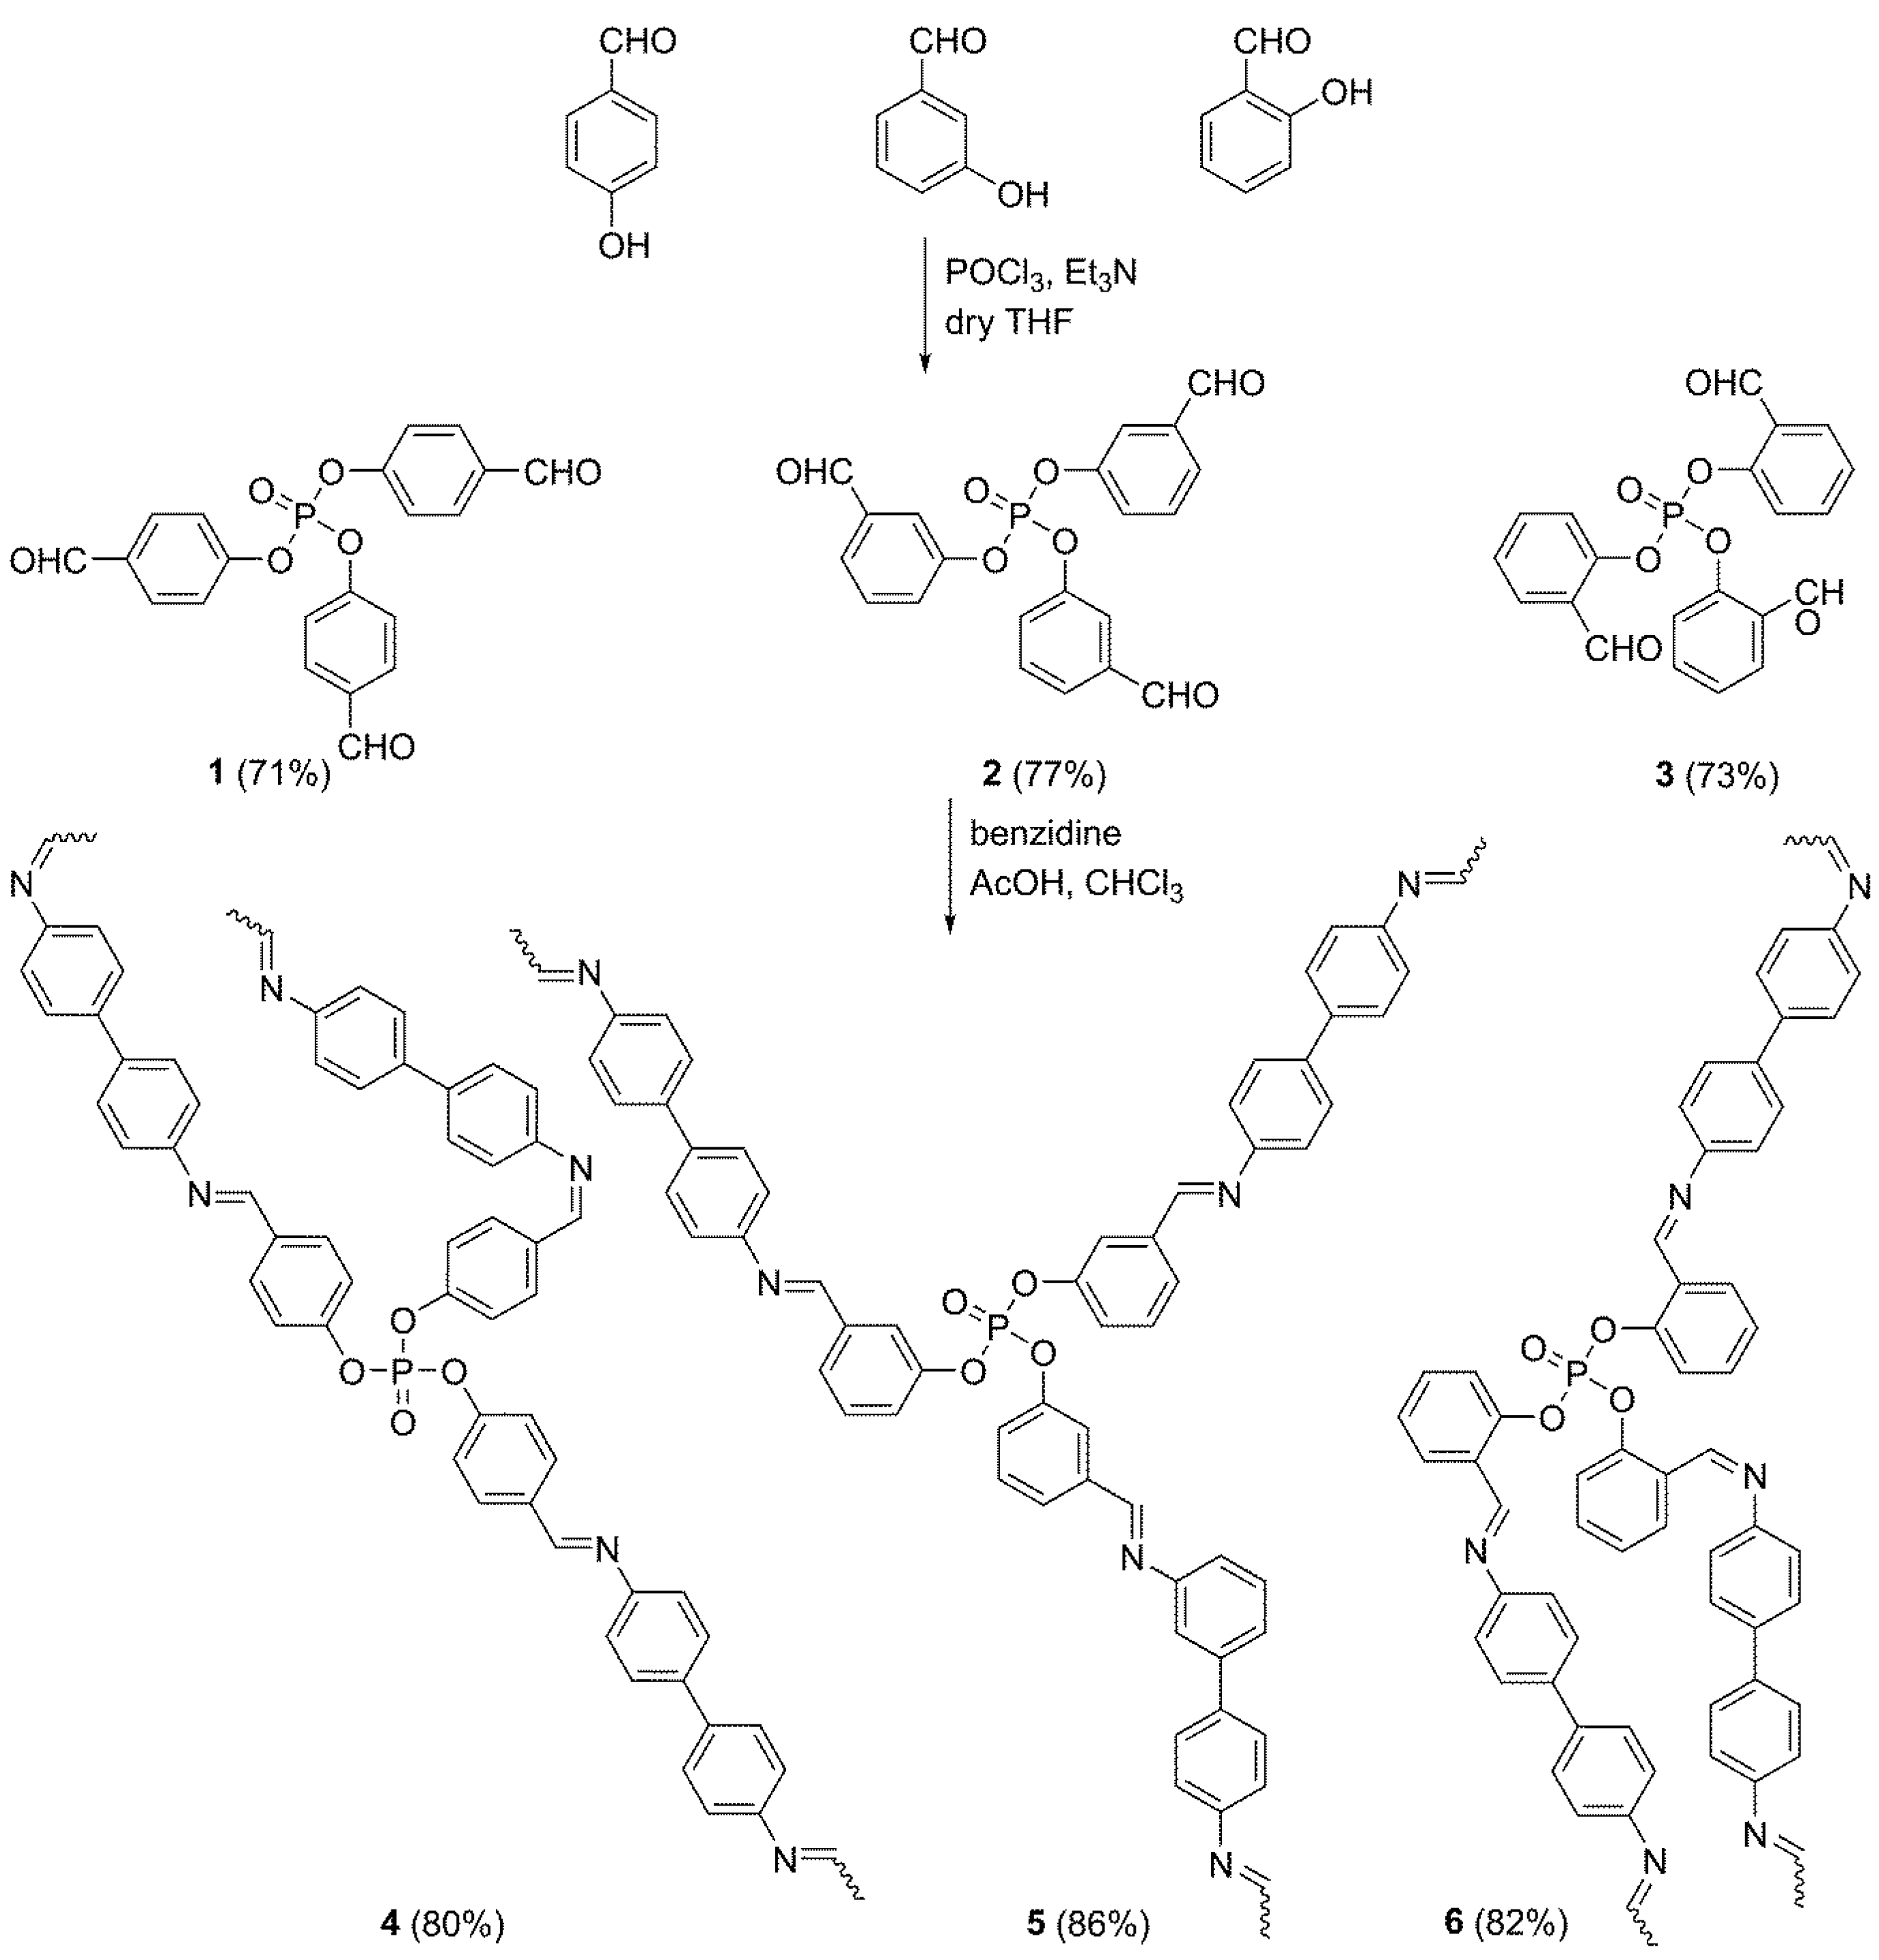 multifunctional porous organics synthesis Porous organic polymer materials from monomers possessing synthesis,andpopsthatencapsulatemetalparticlesthisperspectivearticle manganese porphyrin porous organic polymer mo-cmps = metal-organic conjugated microporous polymers picu = polyisocyanurate.